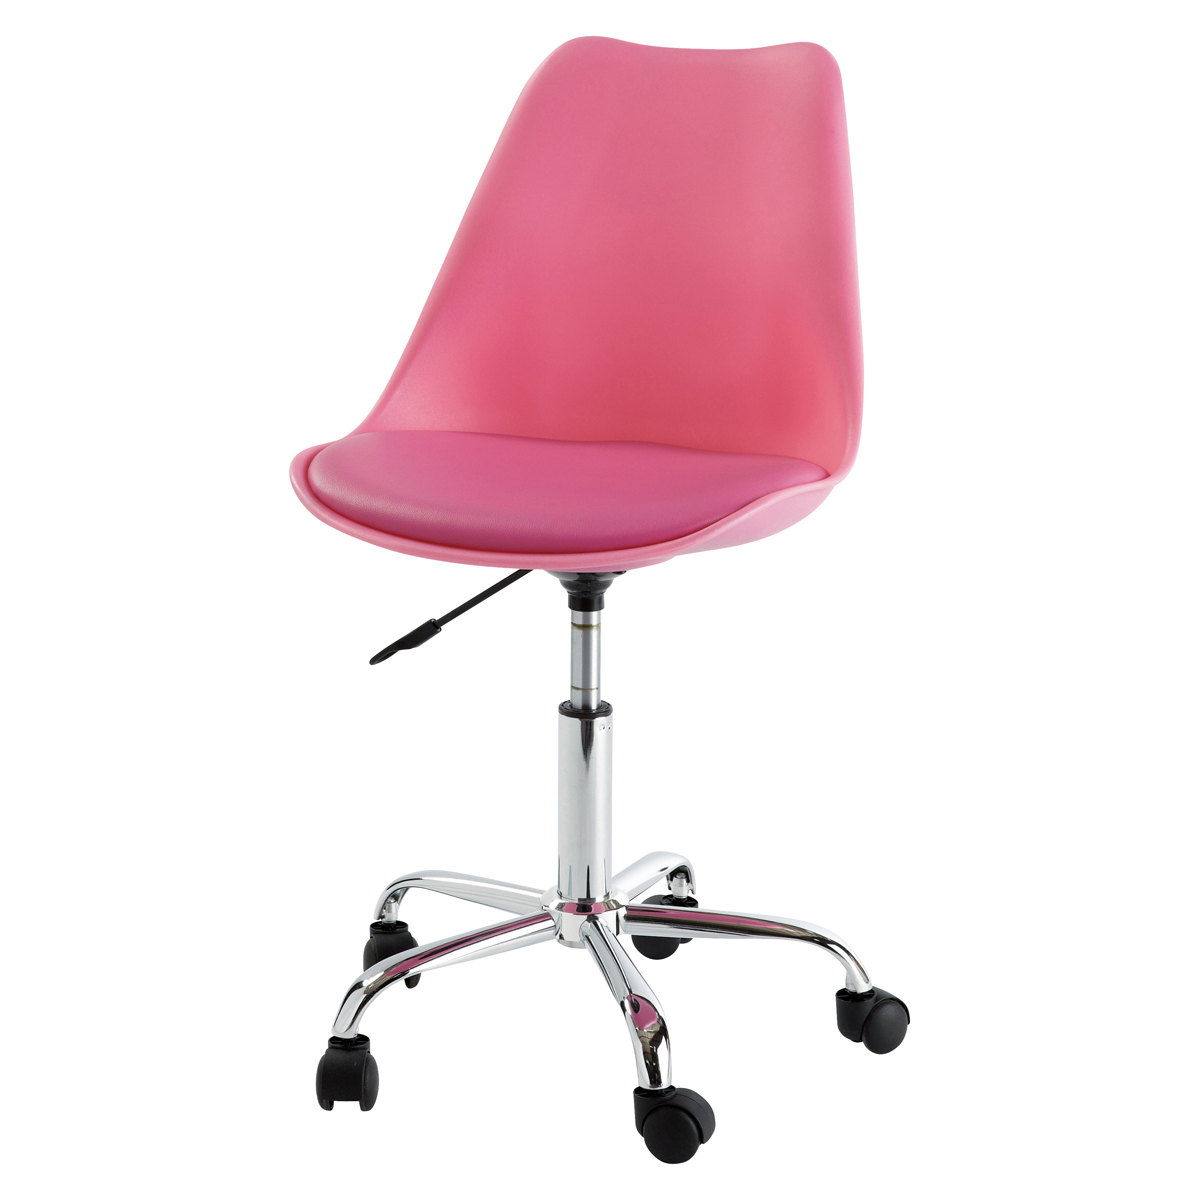 Chaise De Bureau Rose Chaise De Bureau Rose Pas Cher Le Coin Gamer